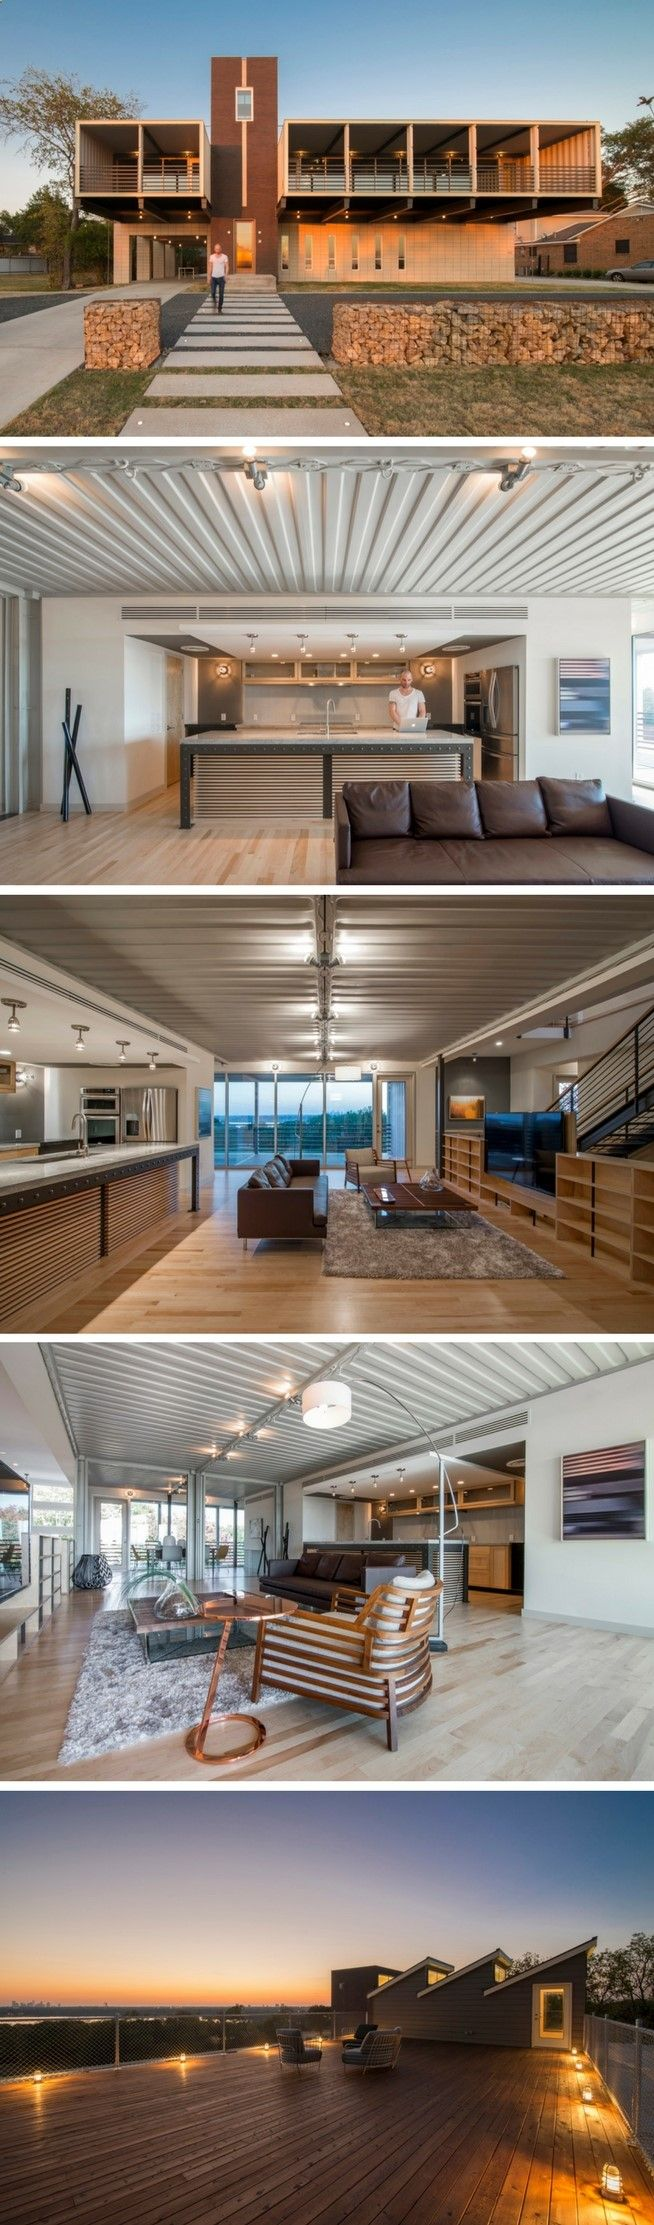 I totally fell in love with this house! A true Texan beauty with a very  traditional shipping container house feel! Come along for a wonderful tour  of this.